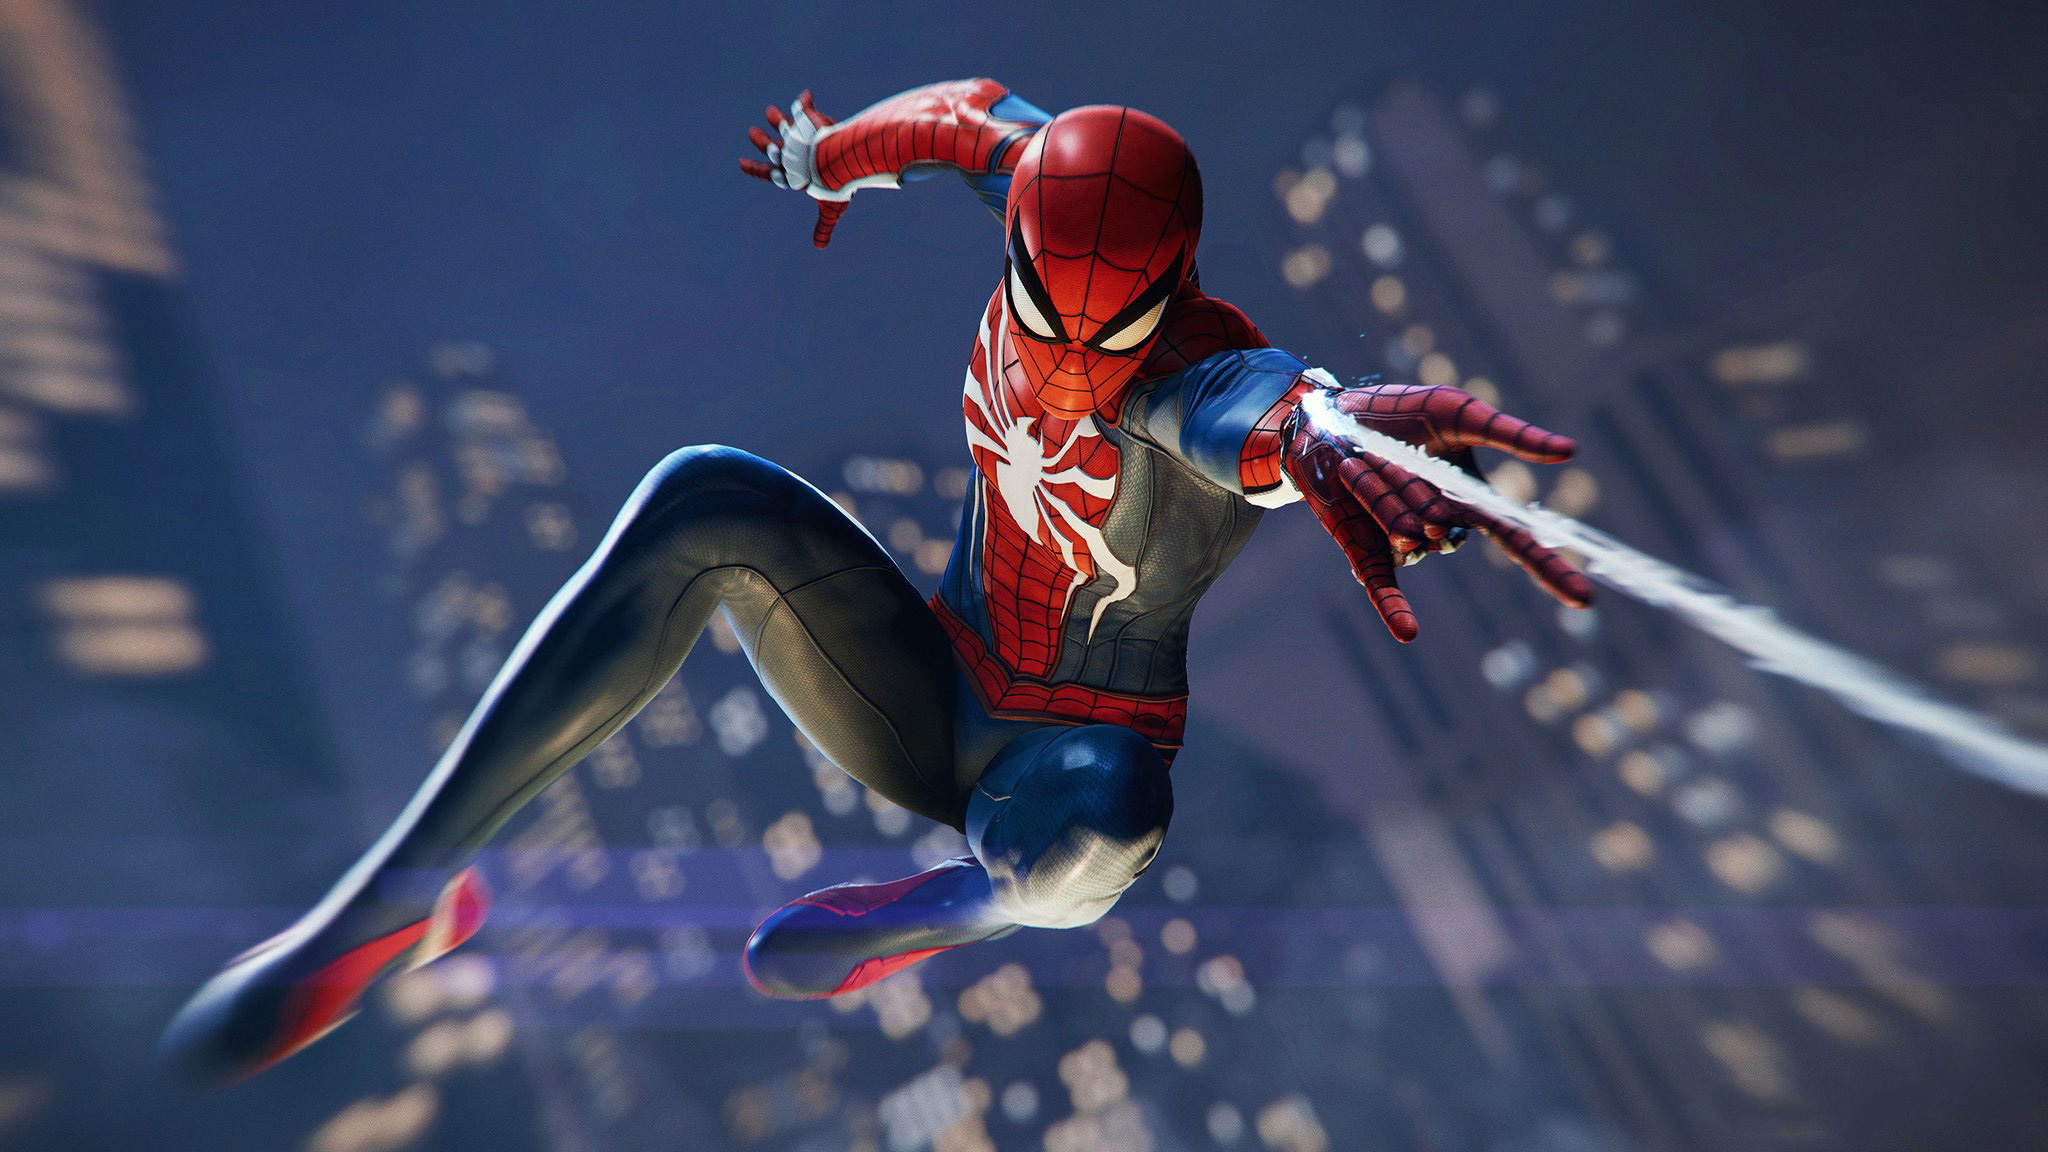 Spiderman Ps4 4k Wallpaper: 3840x2400 Spiderman PS4 Pro Game 4k HD 4k Wallpapers